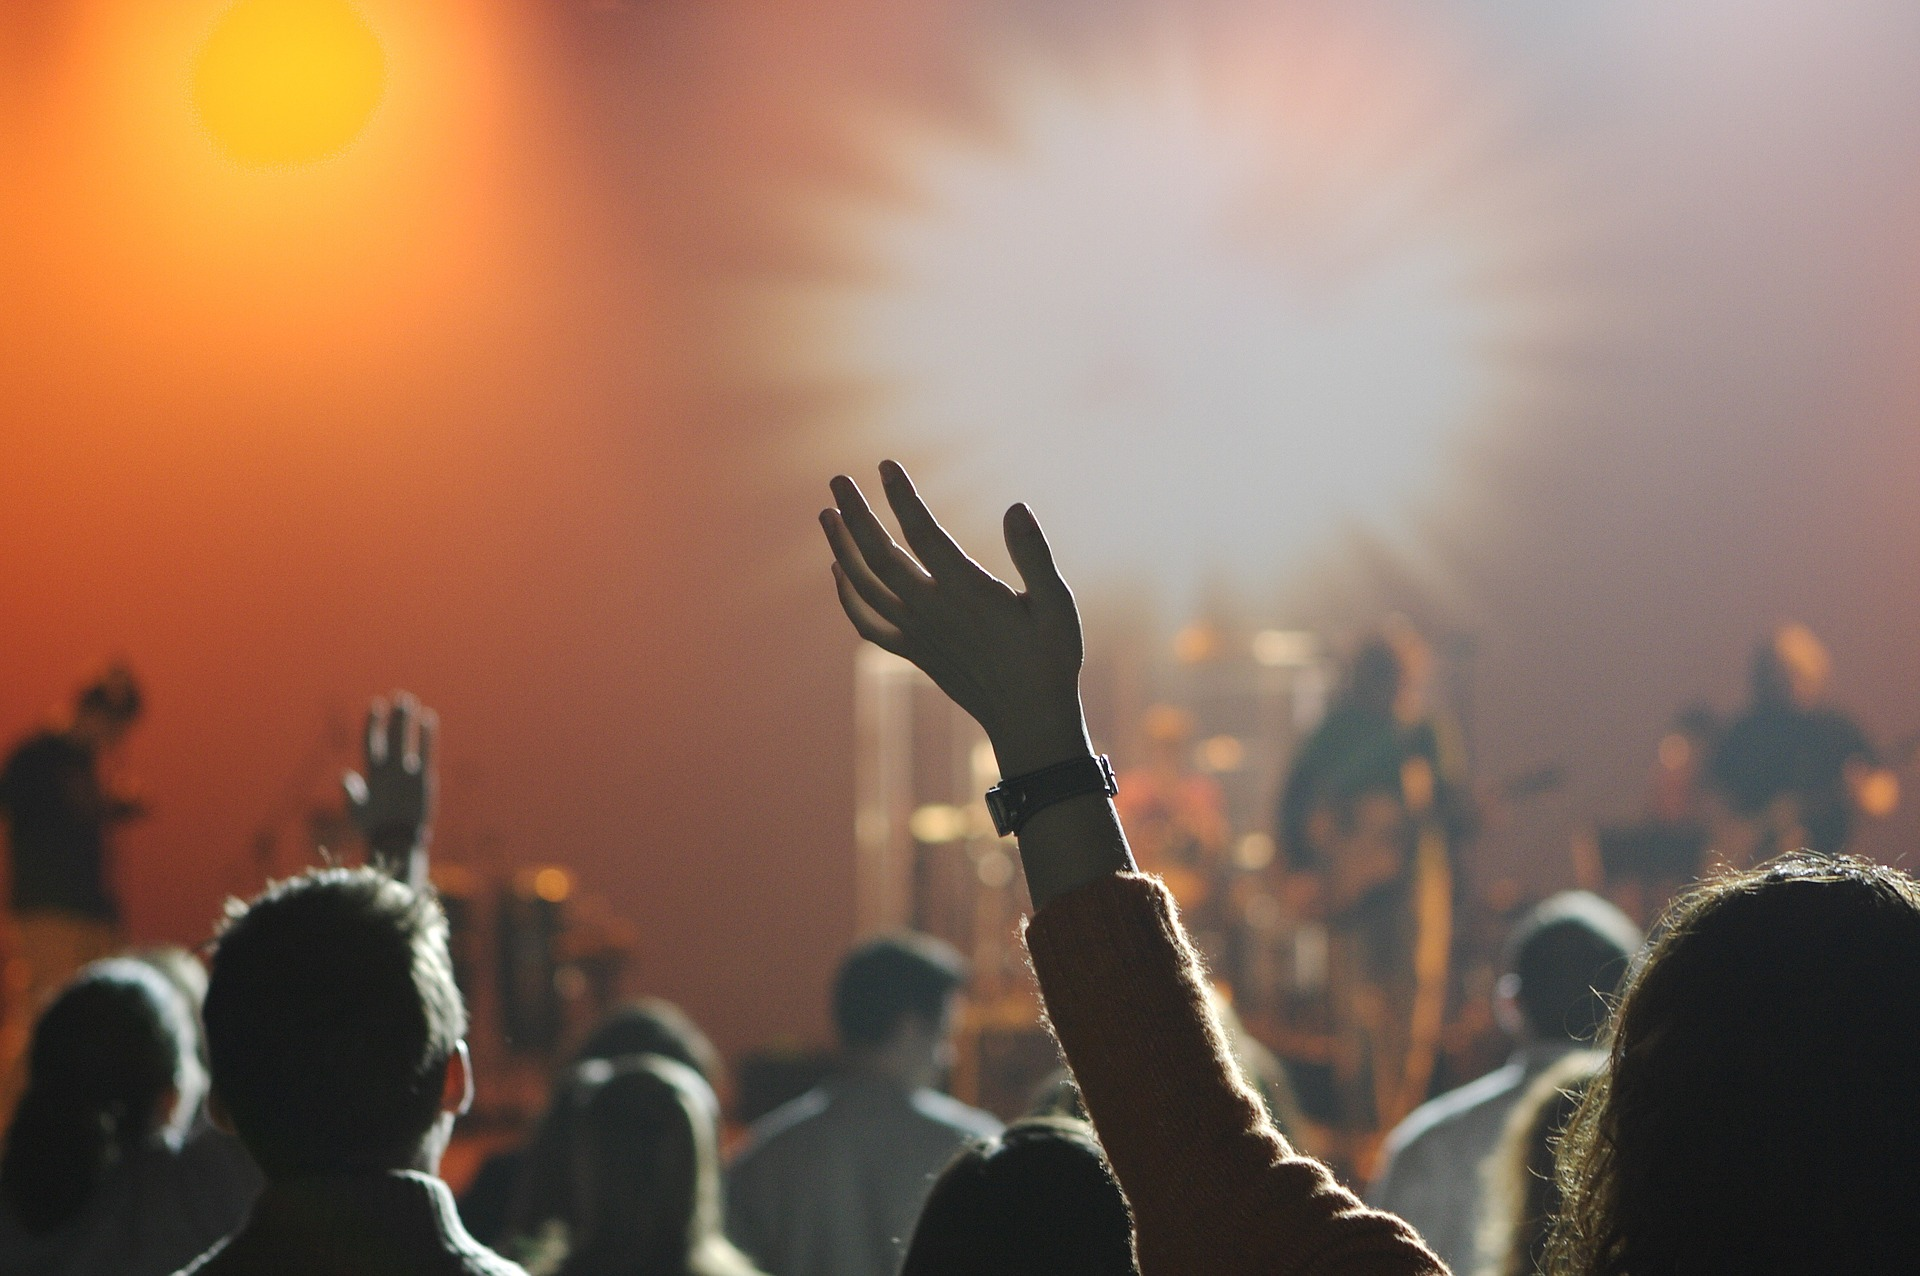 A crowd of people with a band performing in the blurred background